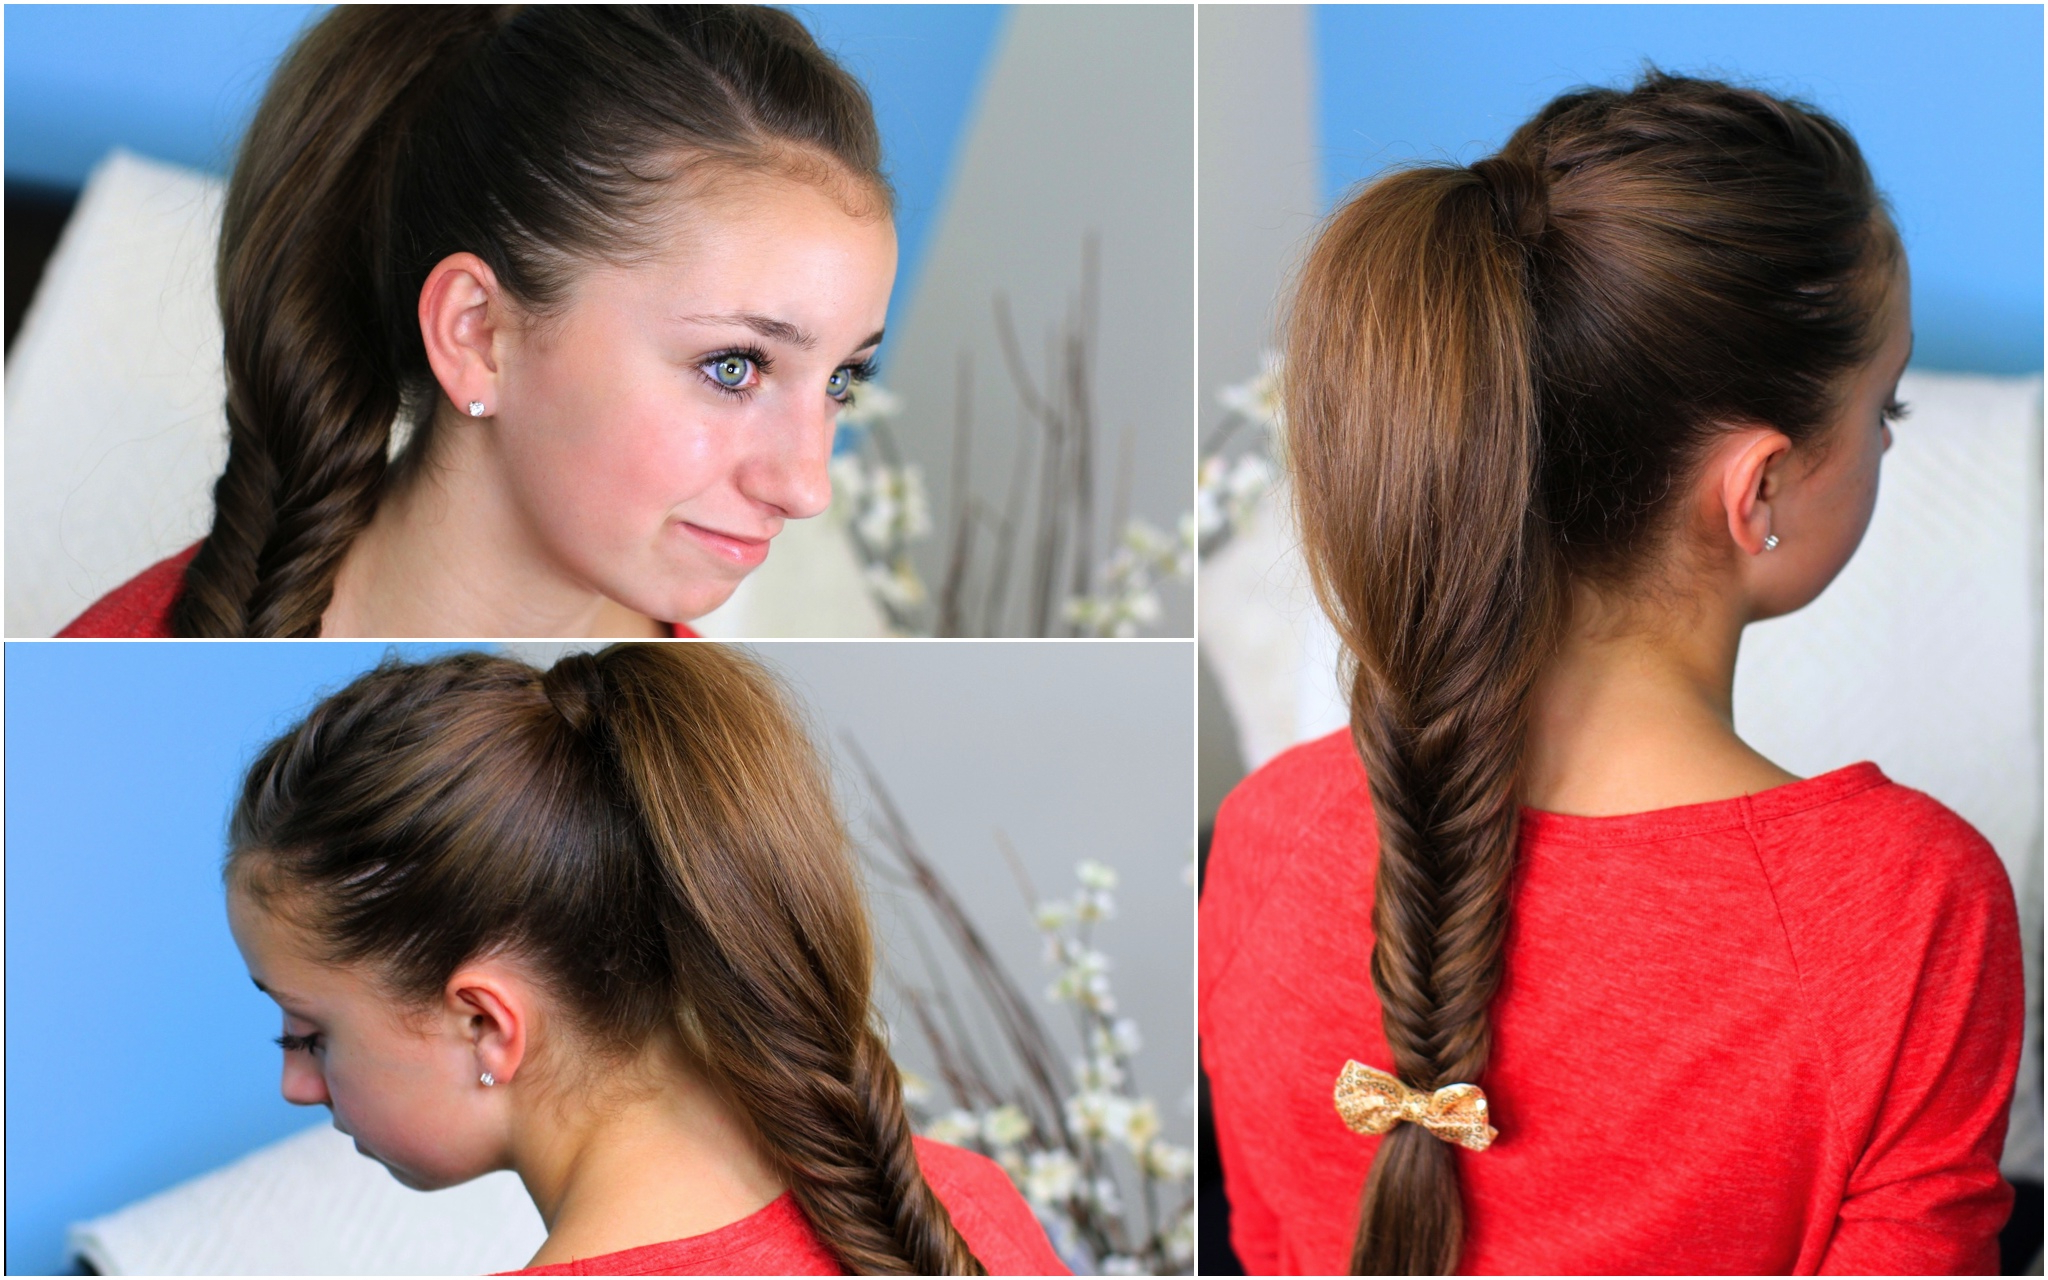 Hairstyles For Long Hair (View 12 of 20)